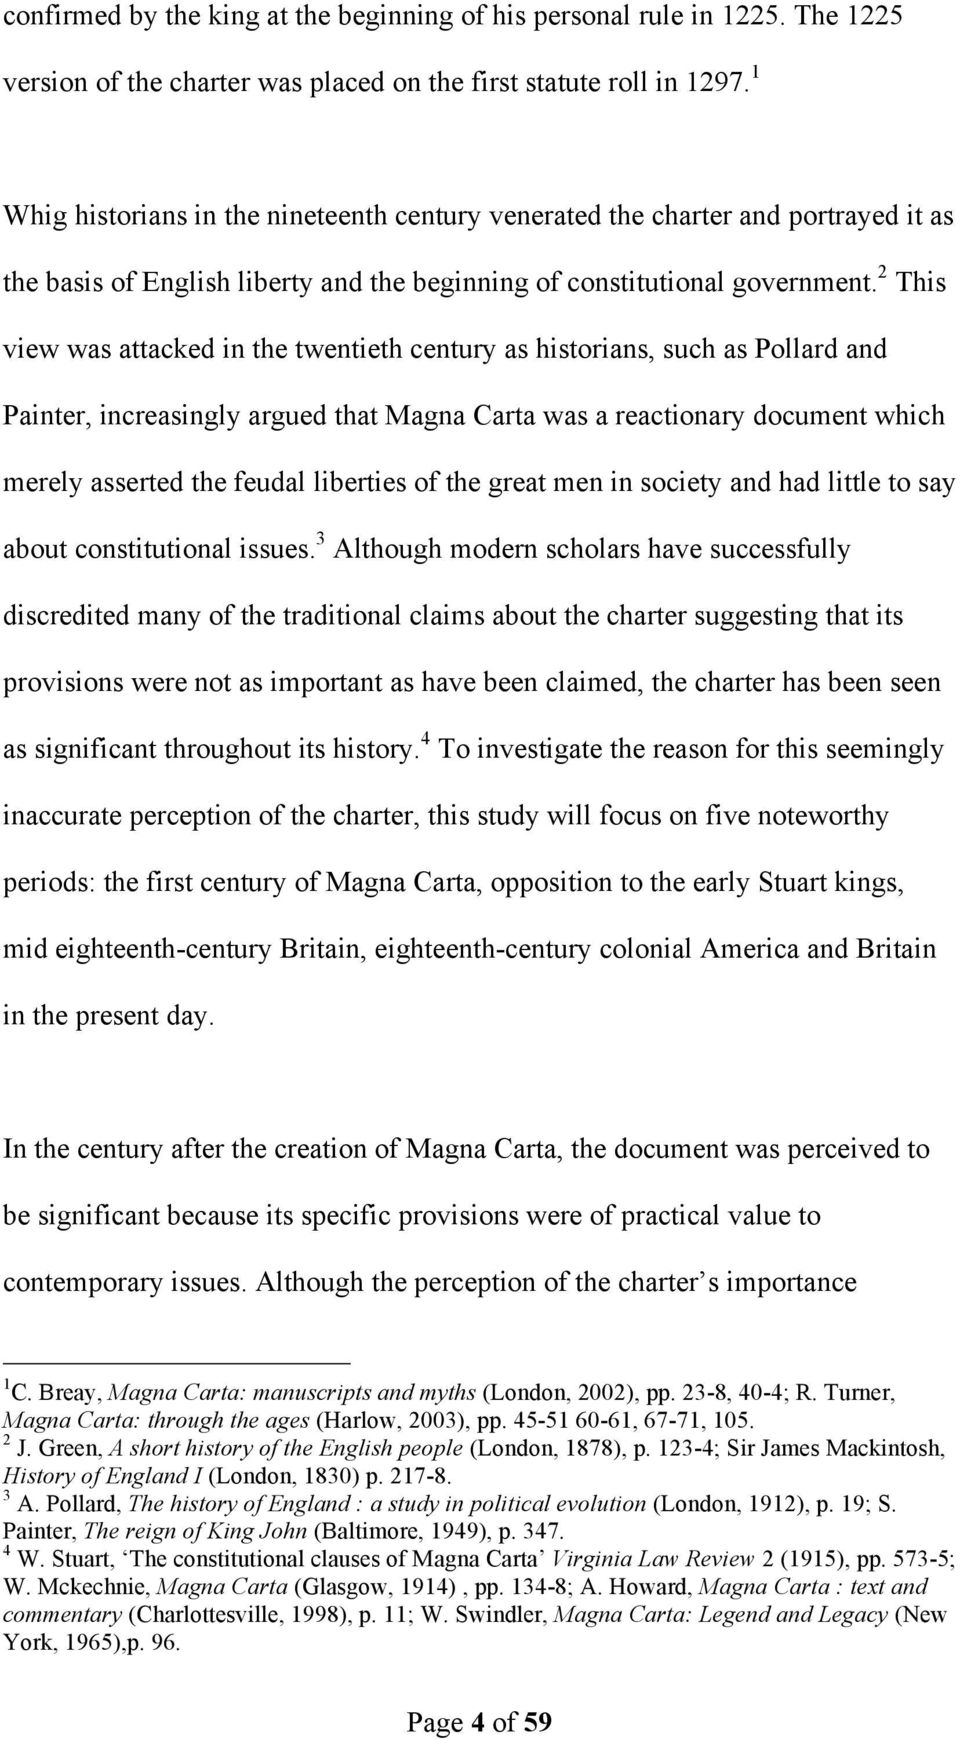 2 This view was attacked in the twentieth century as historians, such as Pollard and Painter, increasingly argued that Magna Carta was a reactionary document which merely asserted the feudal